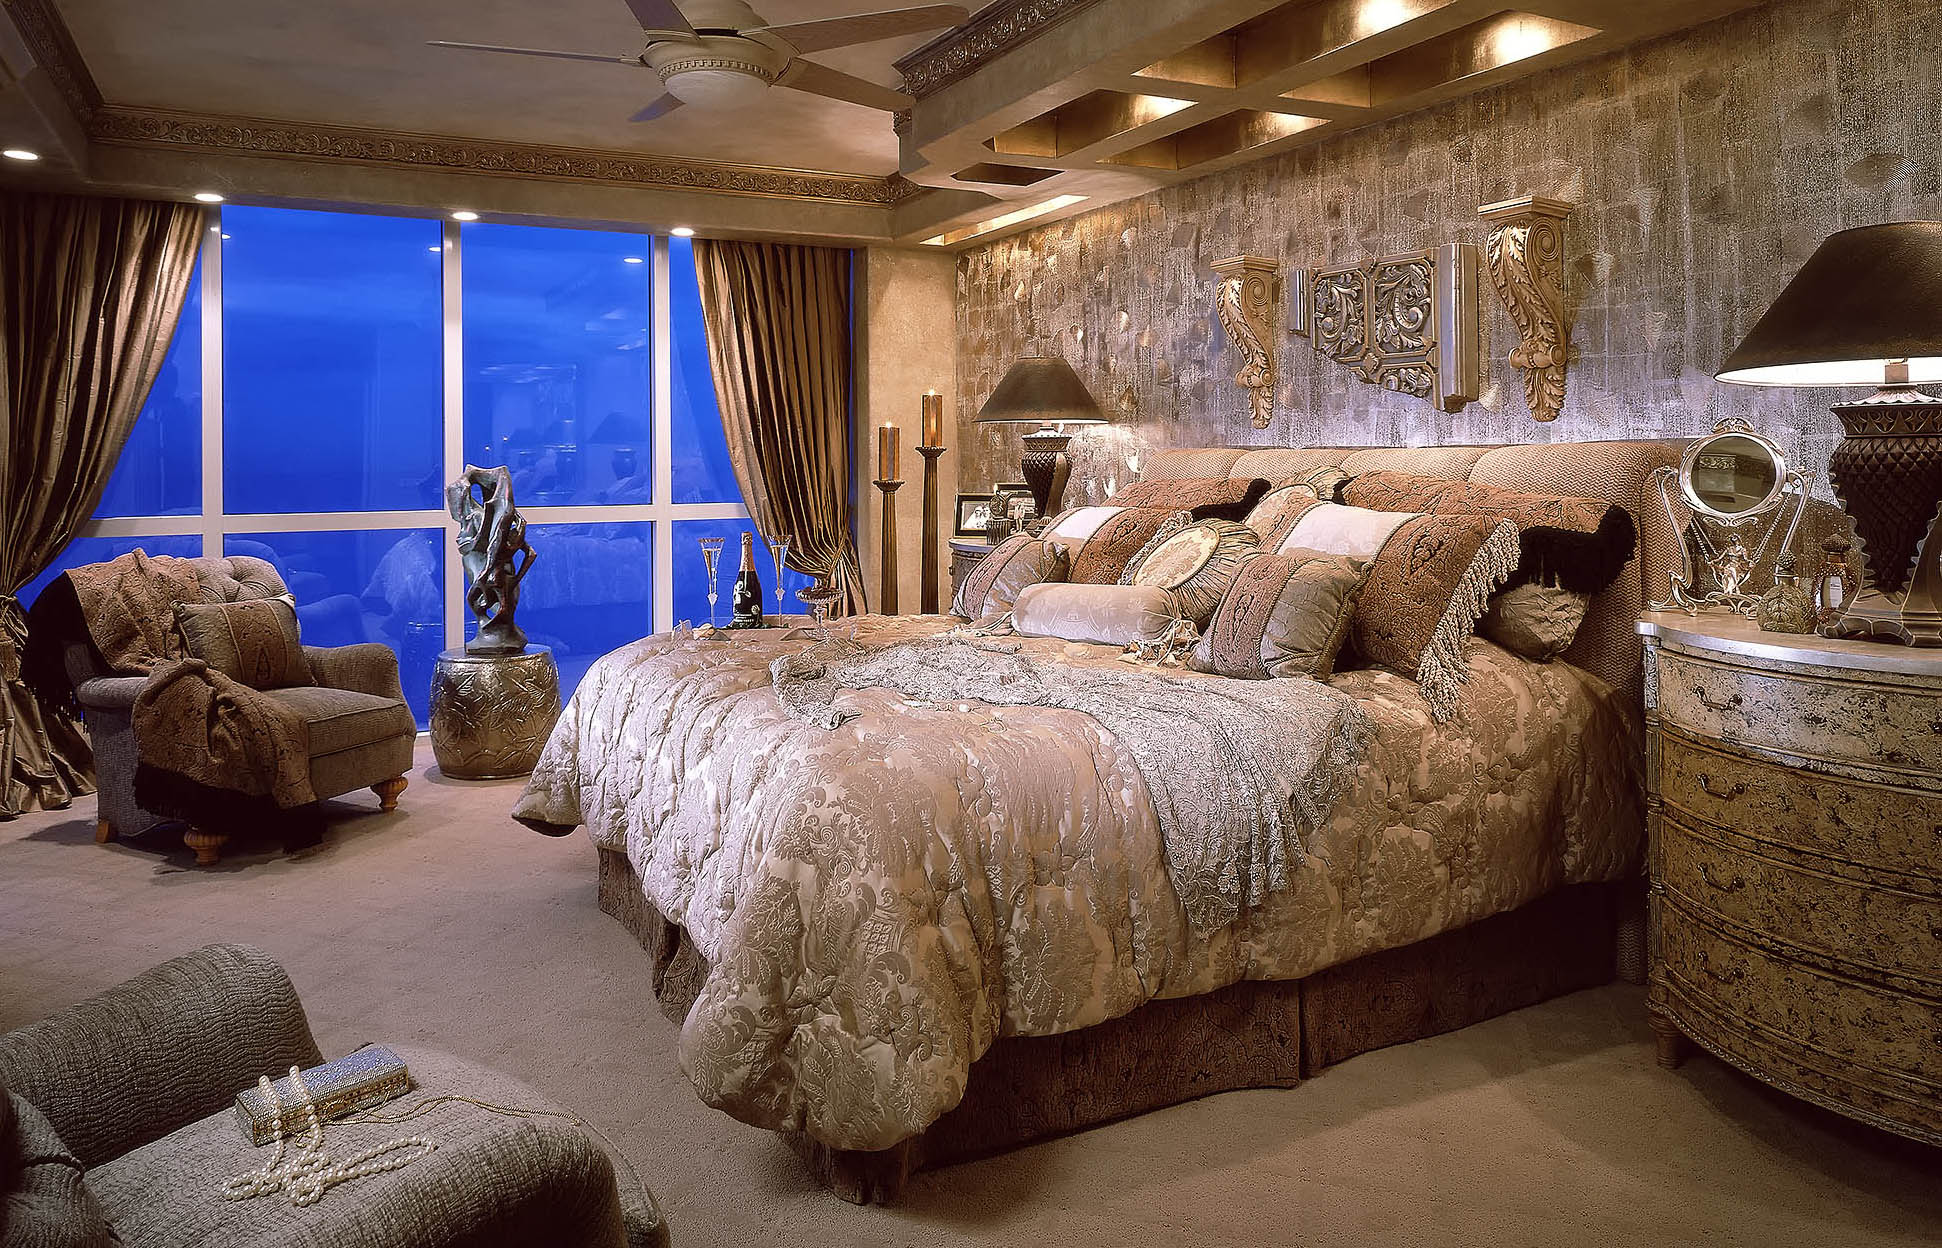 Luxury-Real-Estate-Photography-Bedroom-Glamour-Pearls-Champagne